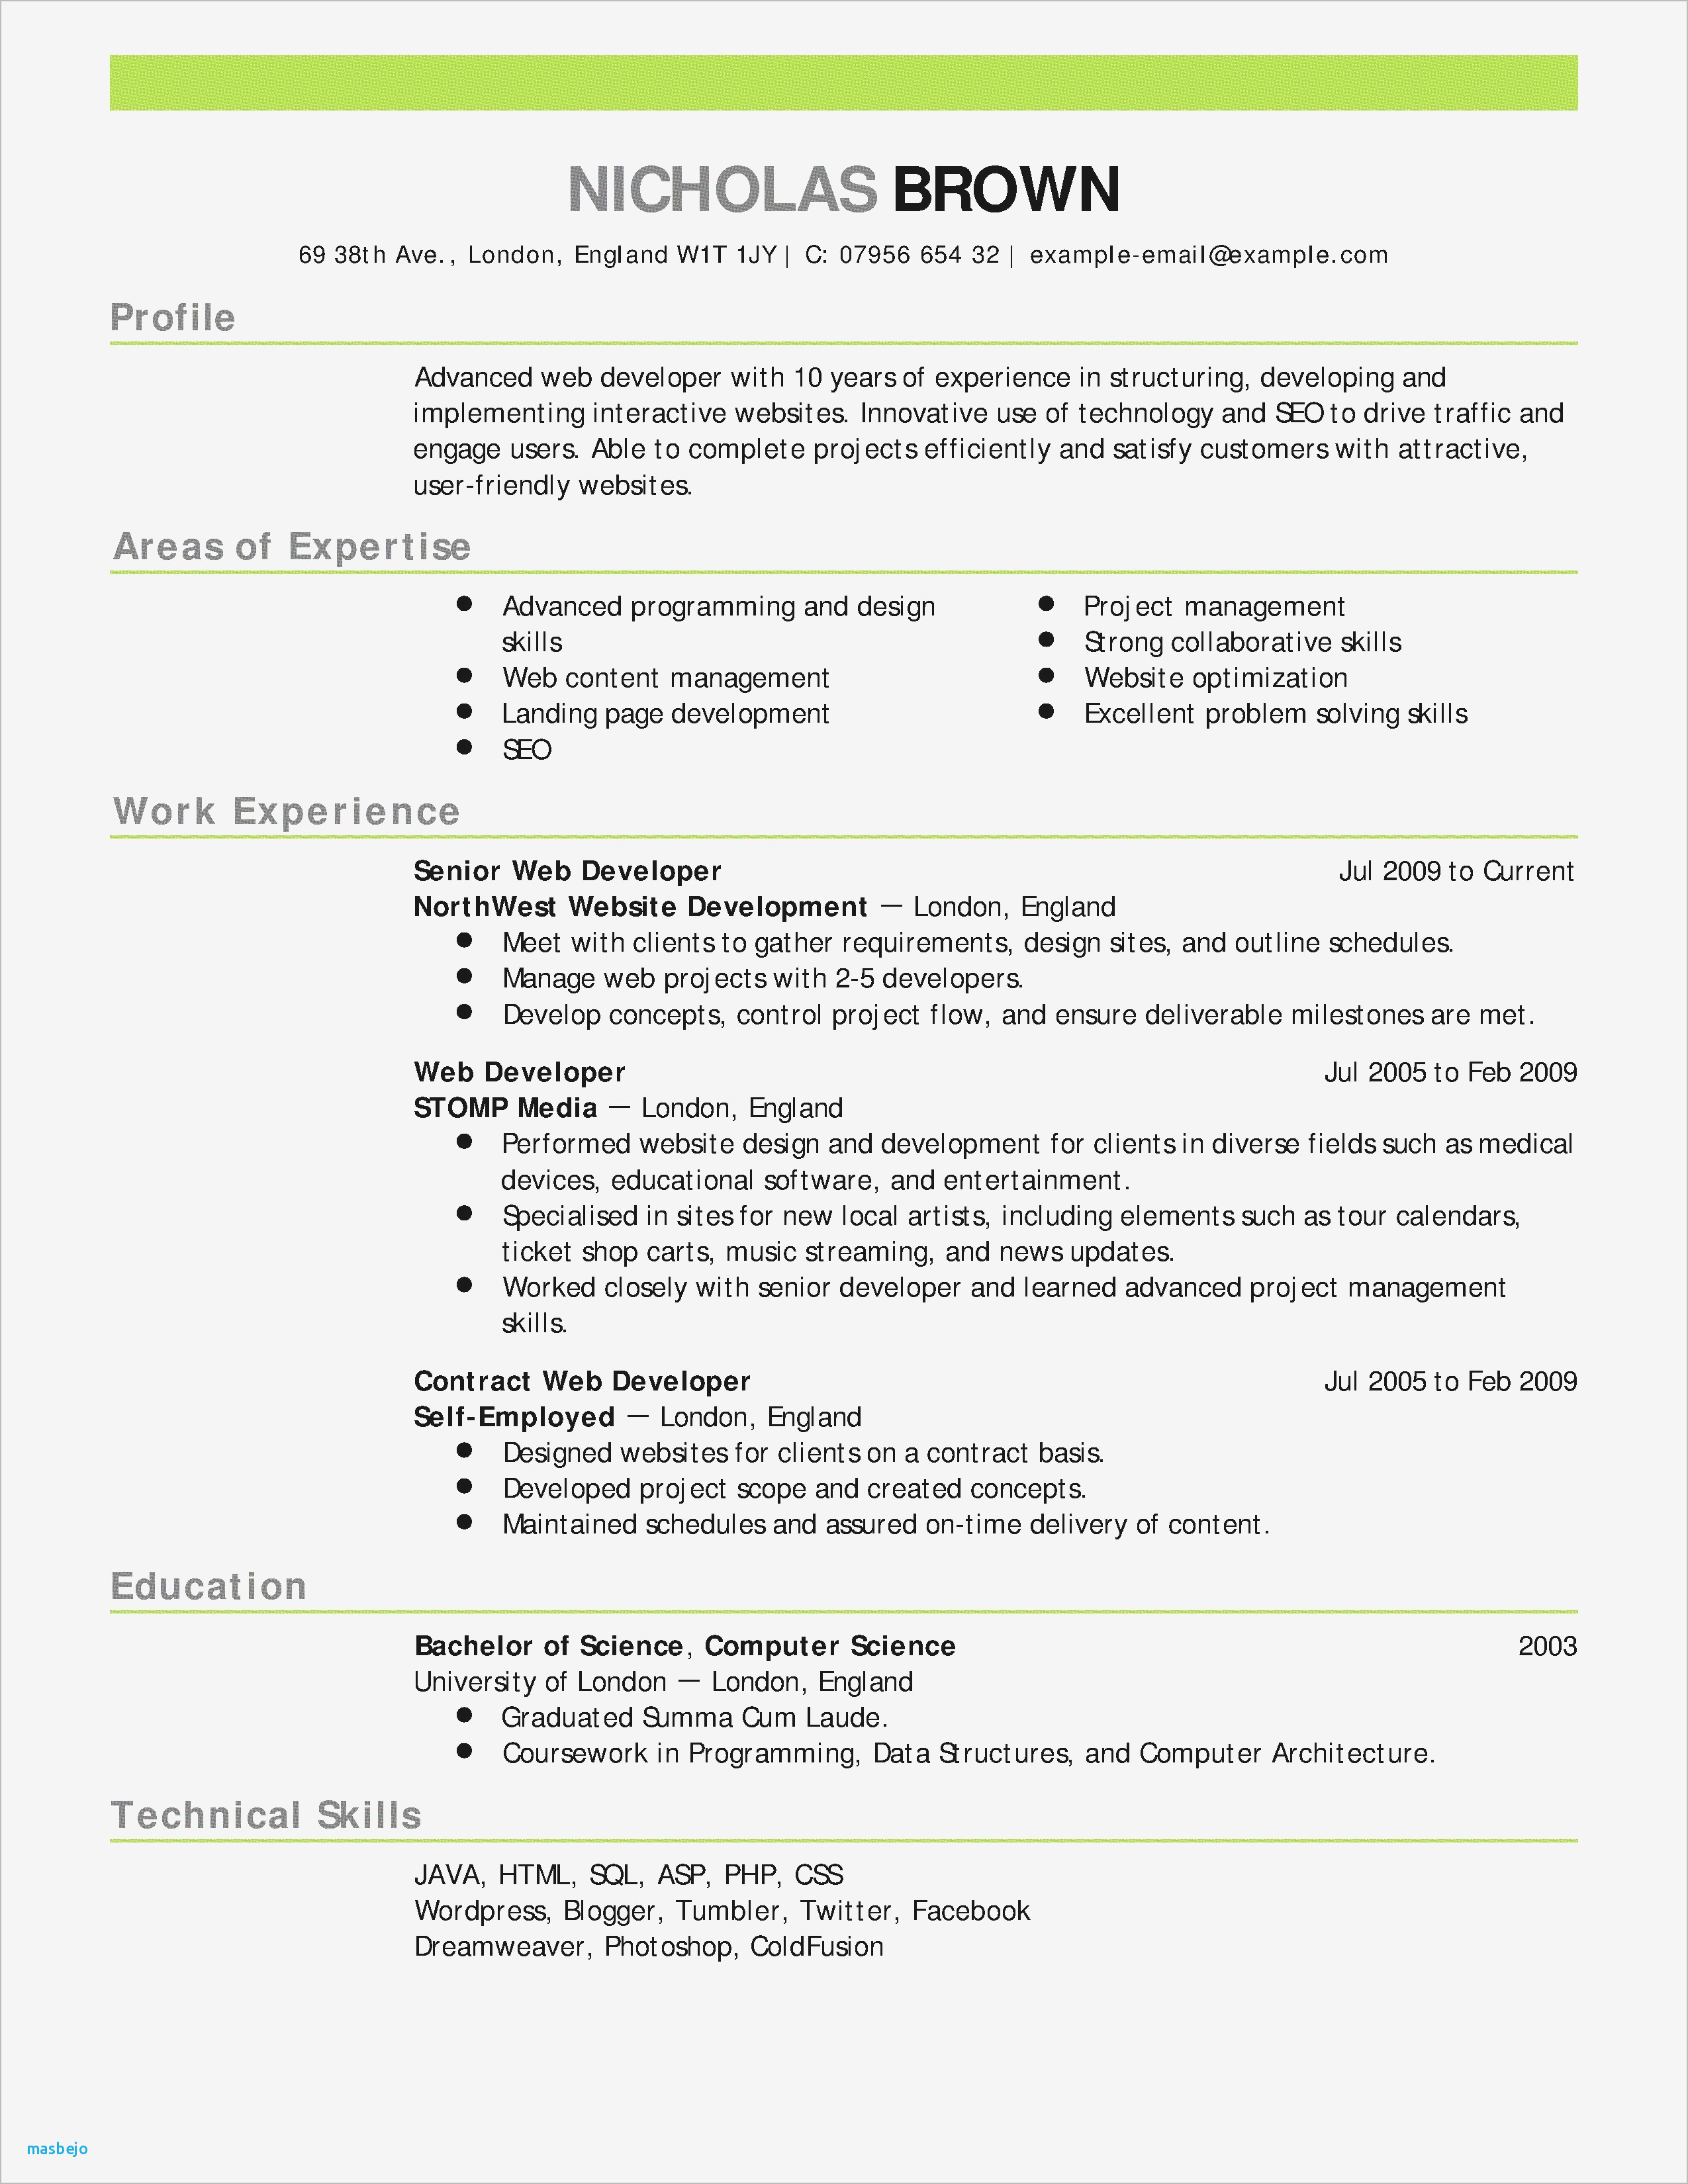 Online Resume Writing Services Reviews - Resume Review Service Resume